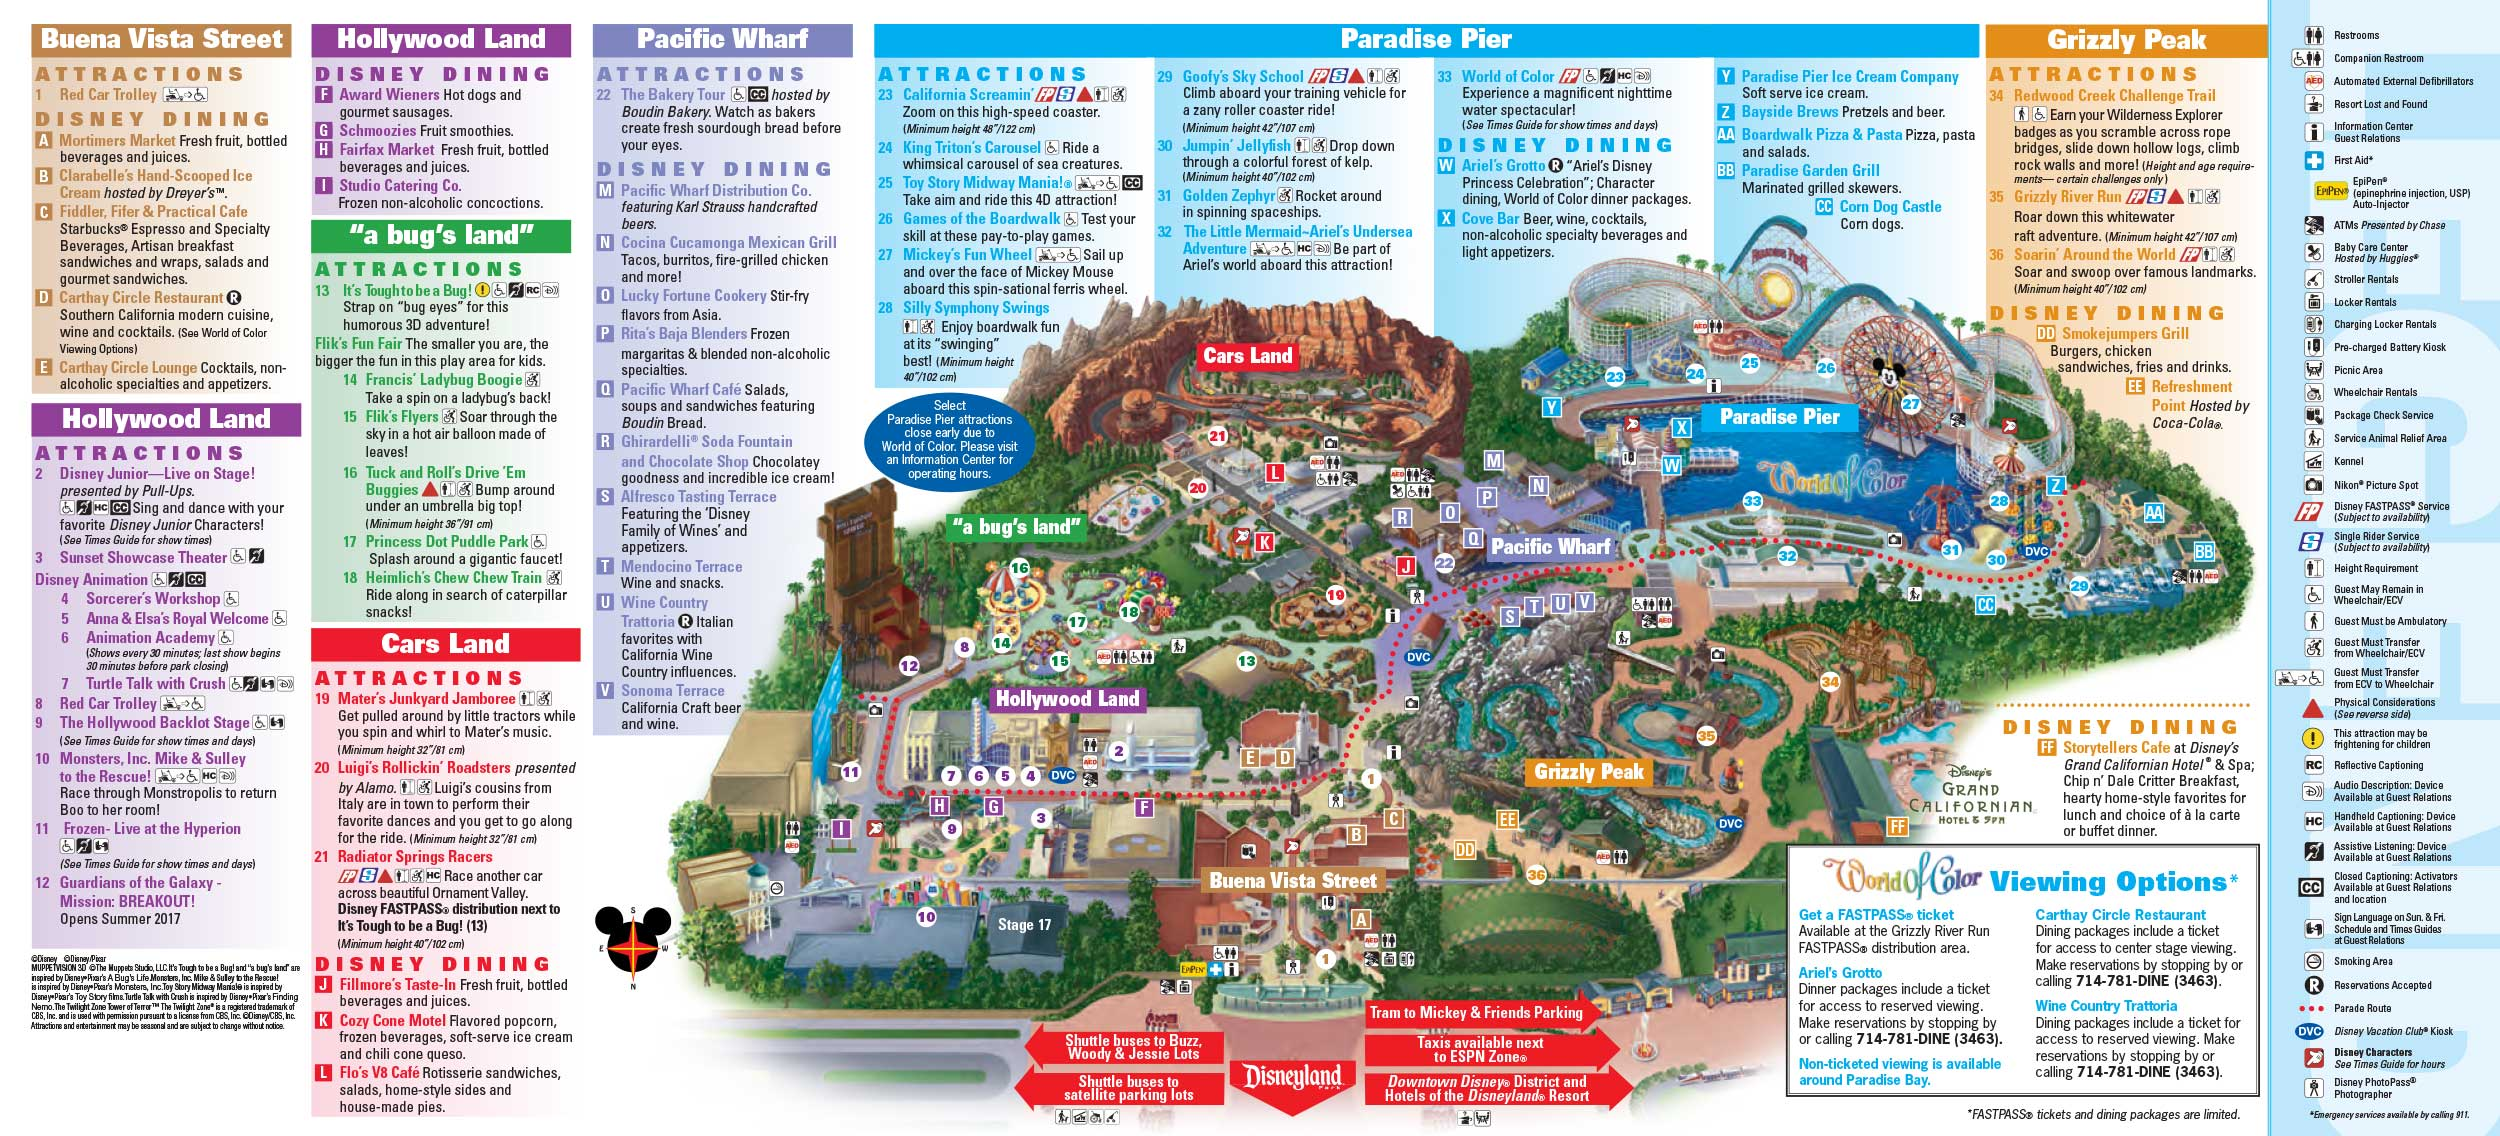 Map Of Disneyland Disneyland Park Map in California, Map of Disneyland Map Of Disneyland